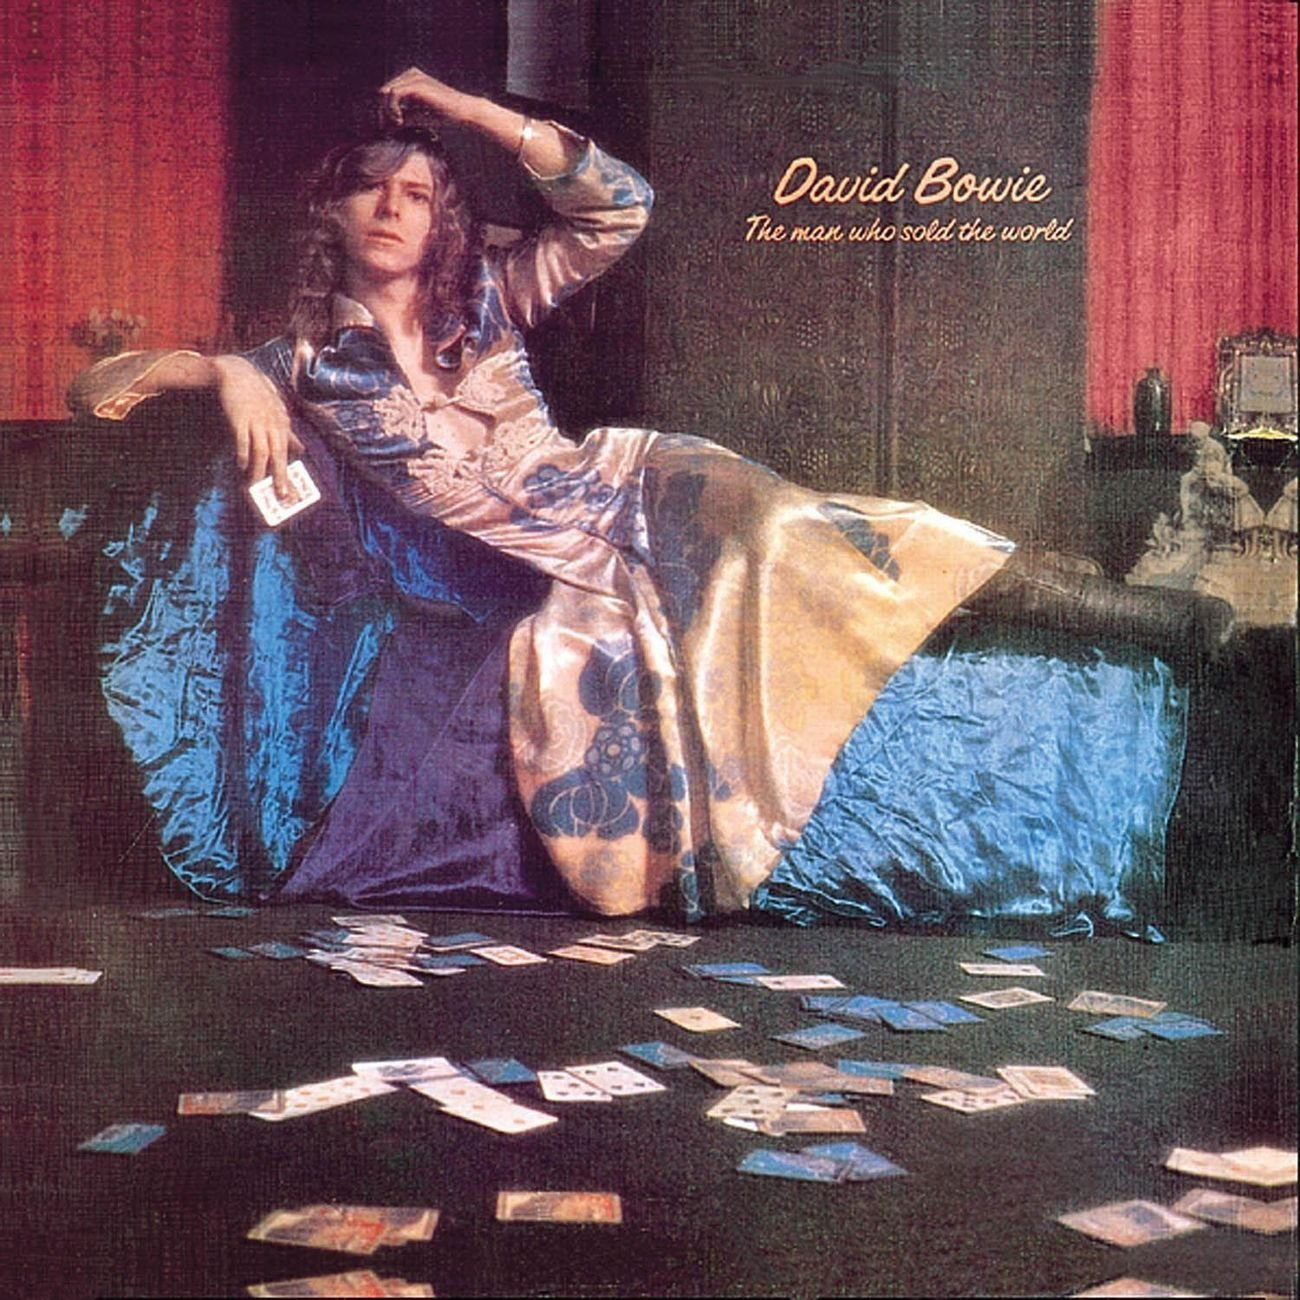 DAVID BOWIE   The Man Who Sold the World, 1970, Tony Visconti, 40:29